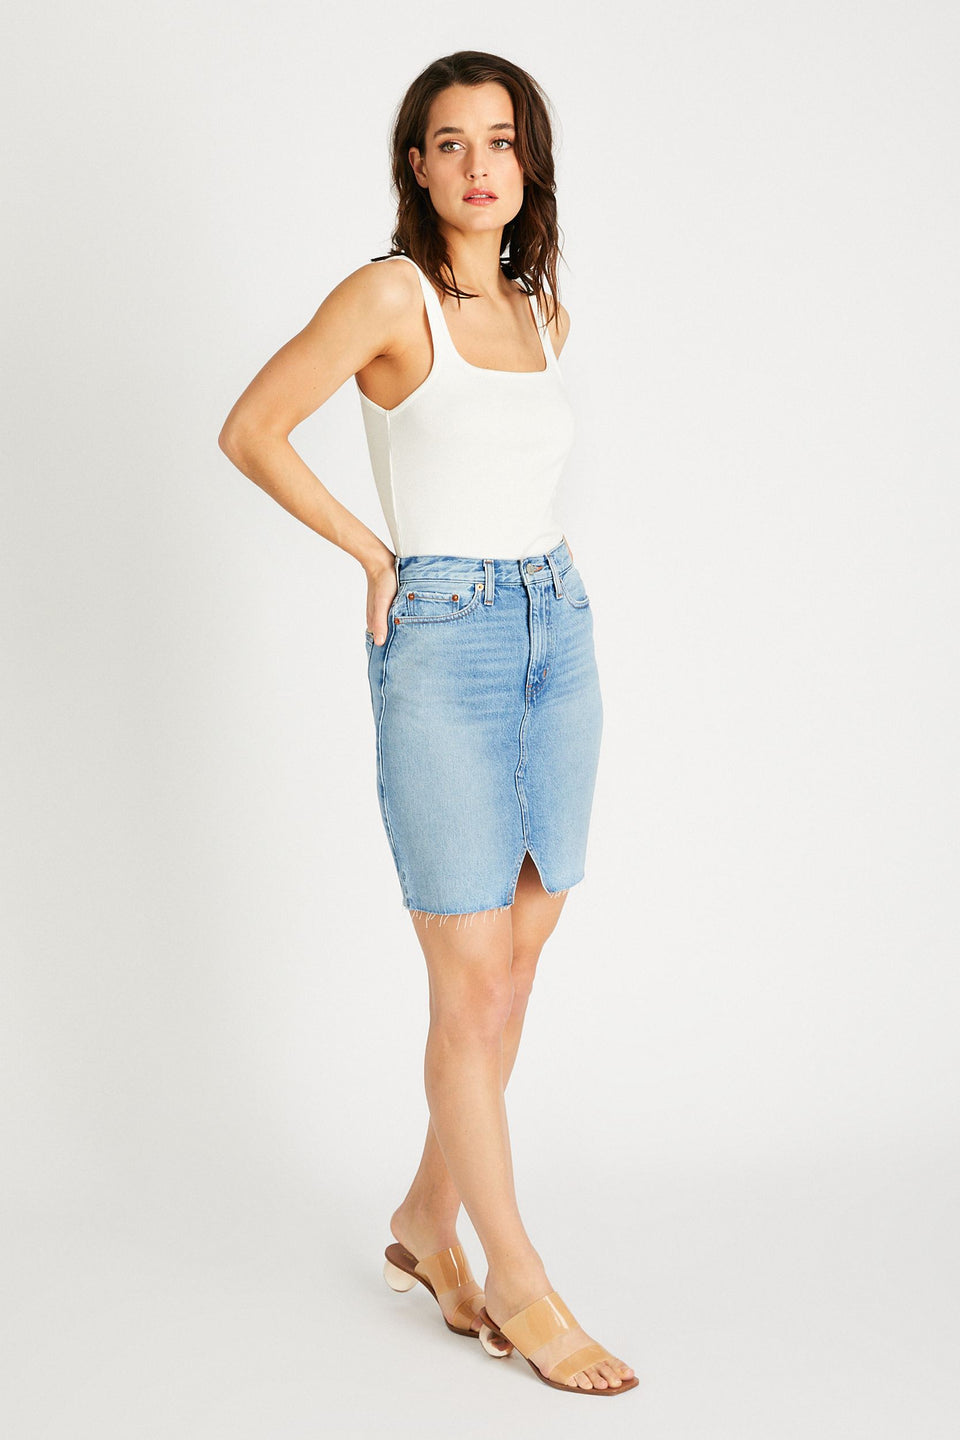 Juliette Skirt in Ice Blue Indigo